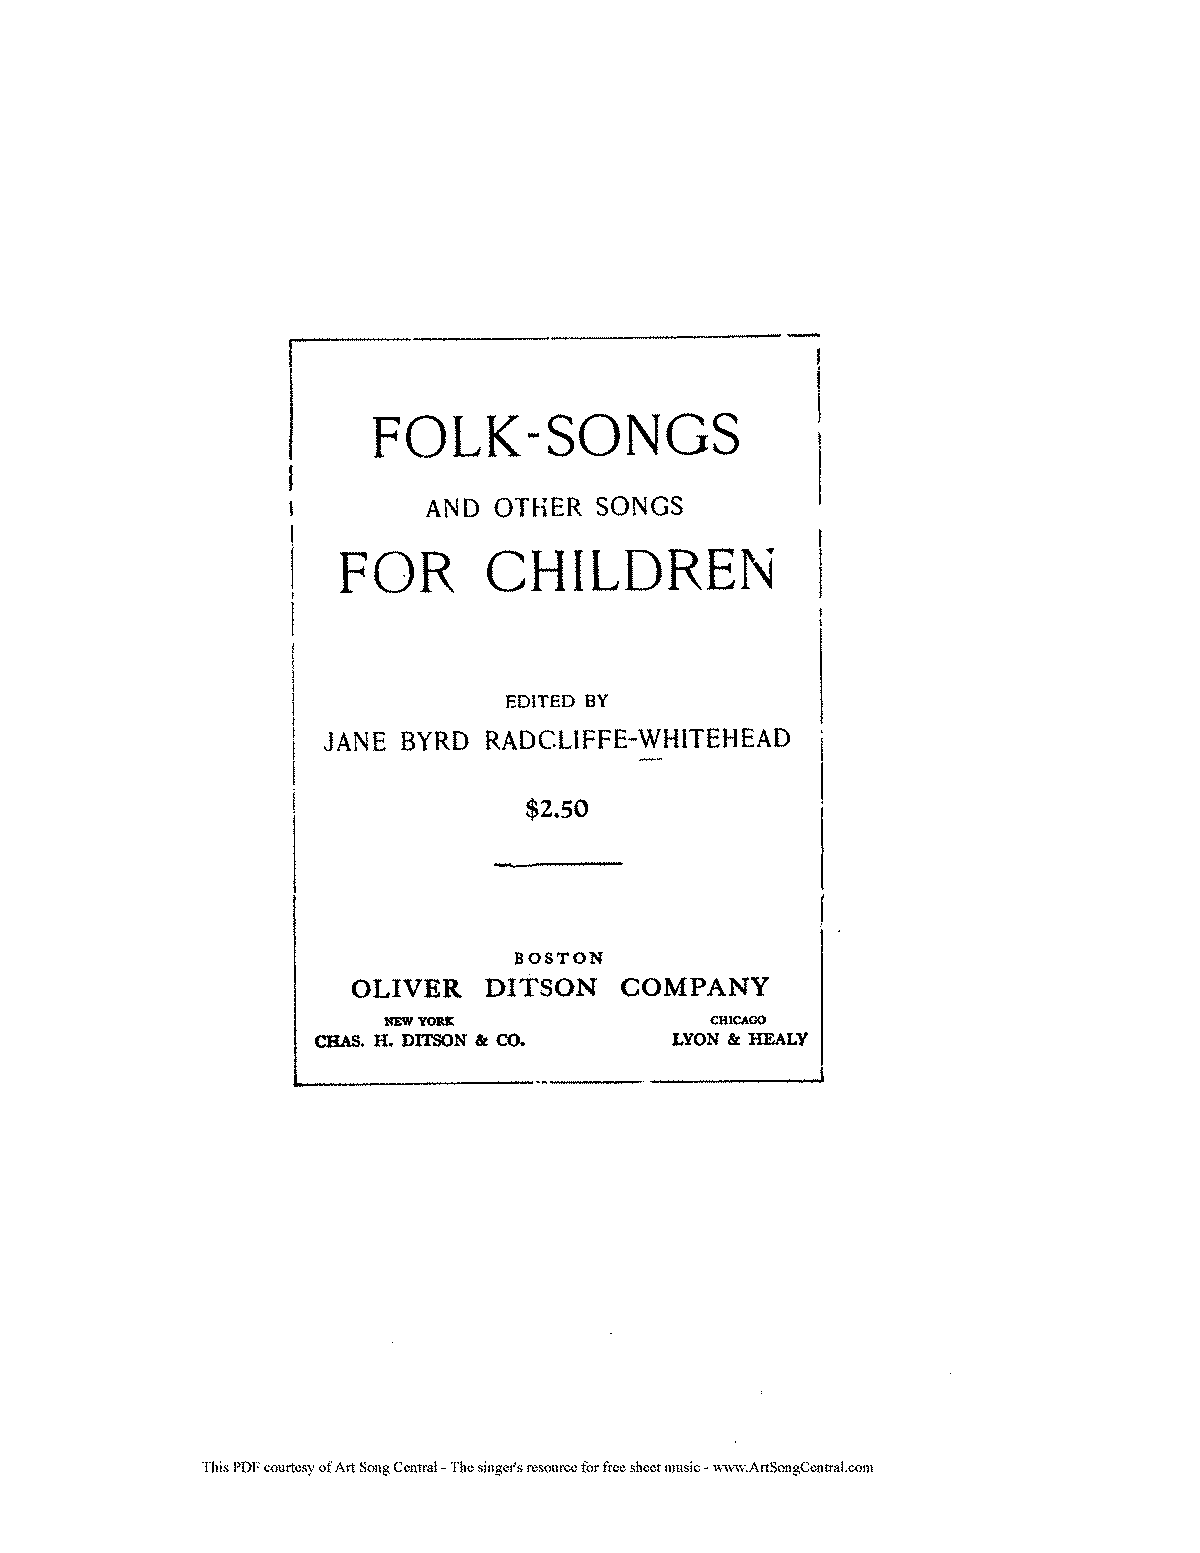 PMLP304496-folksongs-and-other-songs-for-children.pdf